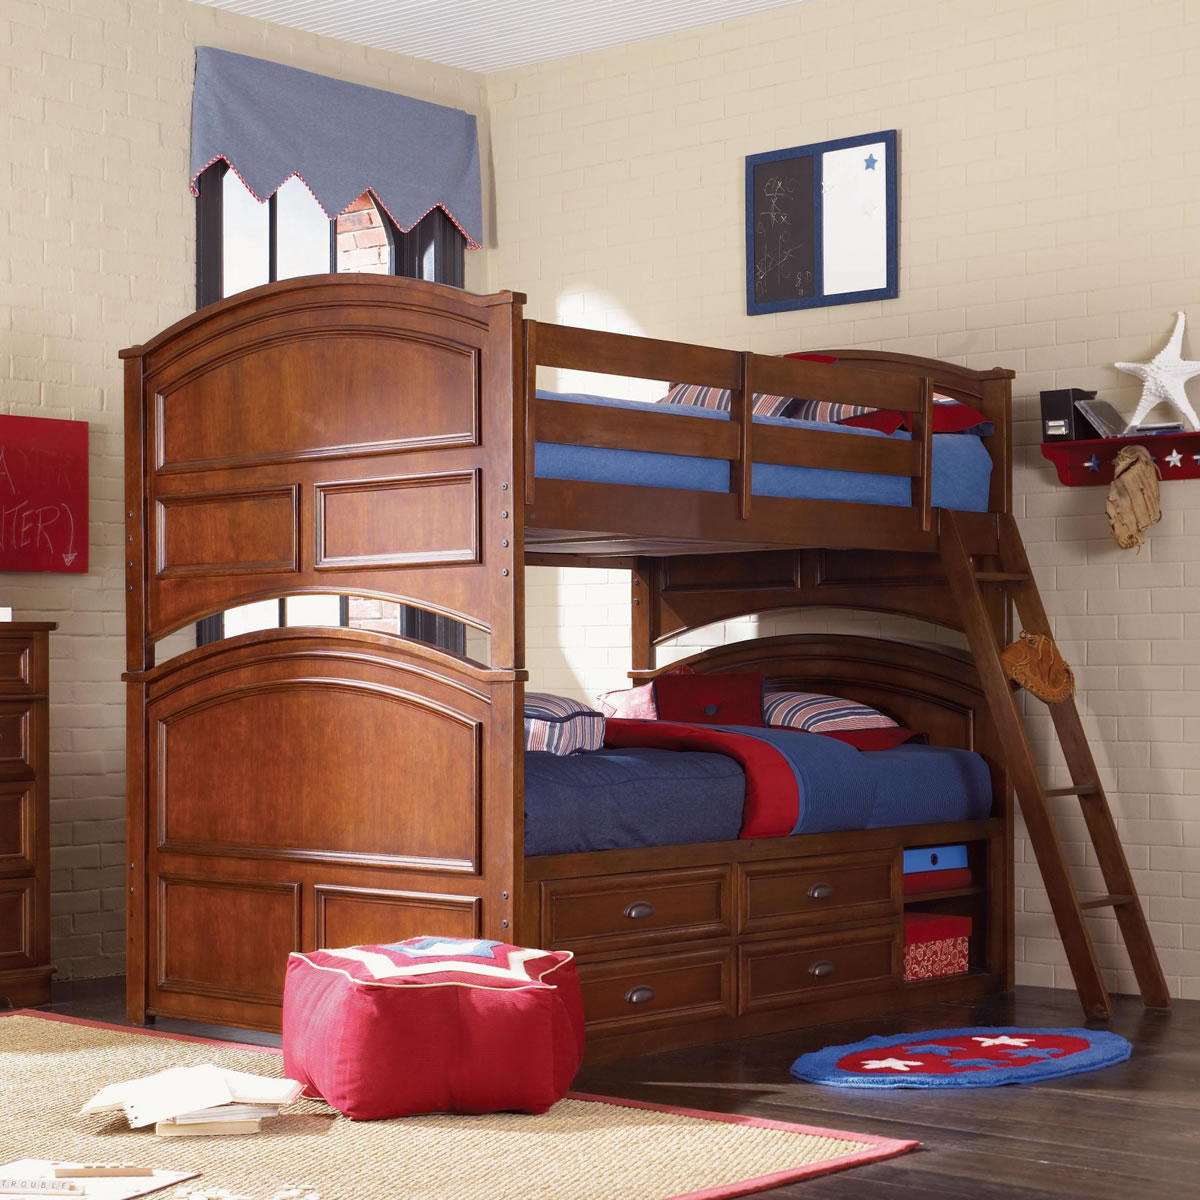 Toddler bunk beds and loft beds browse read reviews discover - Full Over Full Bunk Beds